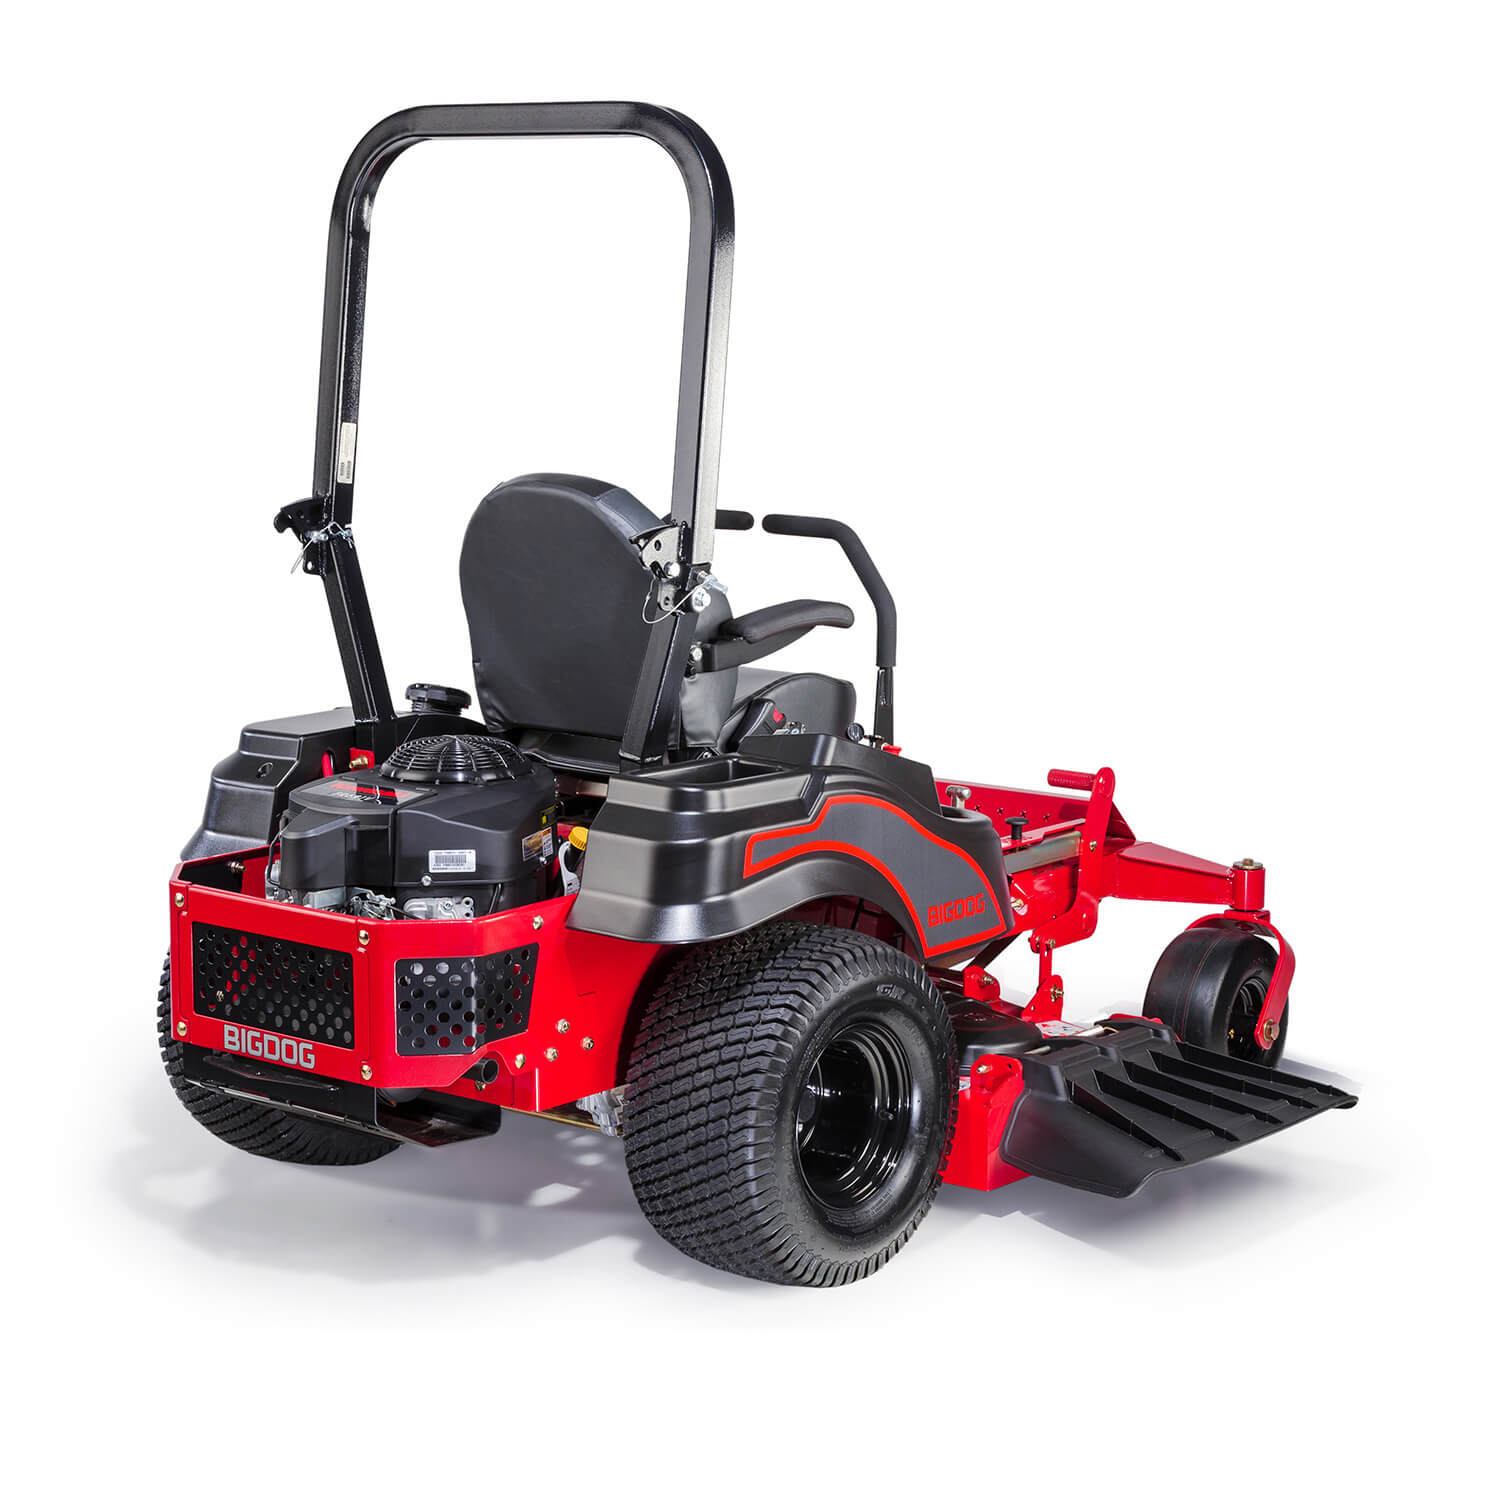 Image of the rear three quarters of a red riding mower showing the discharge side of the deck